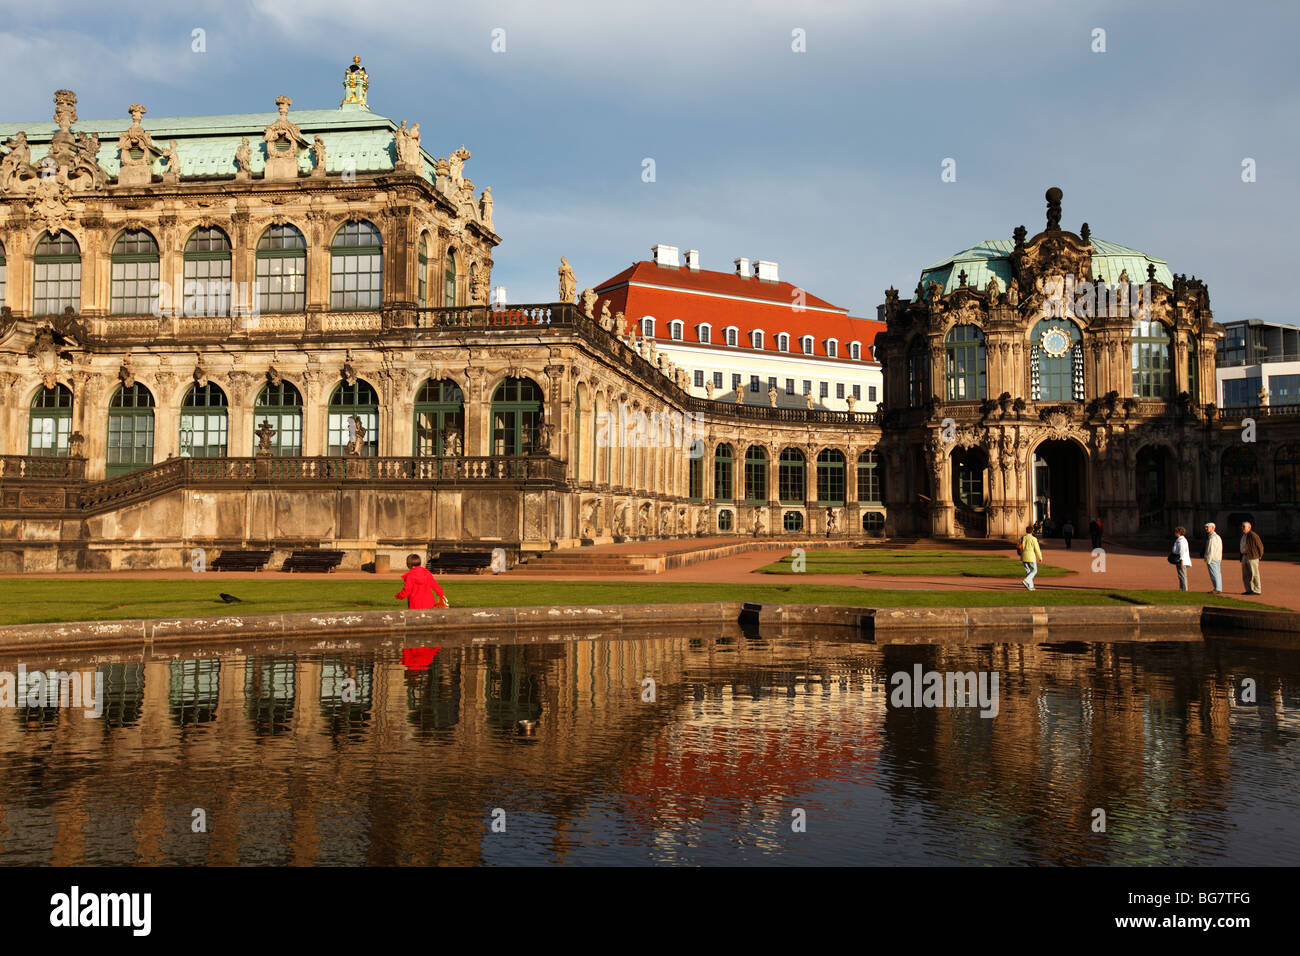 Germany Saxony Dresden Zwinger Palace Mathematisch-Physikalischer Salon Mathematical-Physical Sciences Salon Rampart - Stock Image